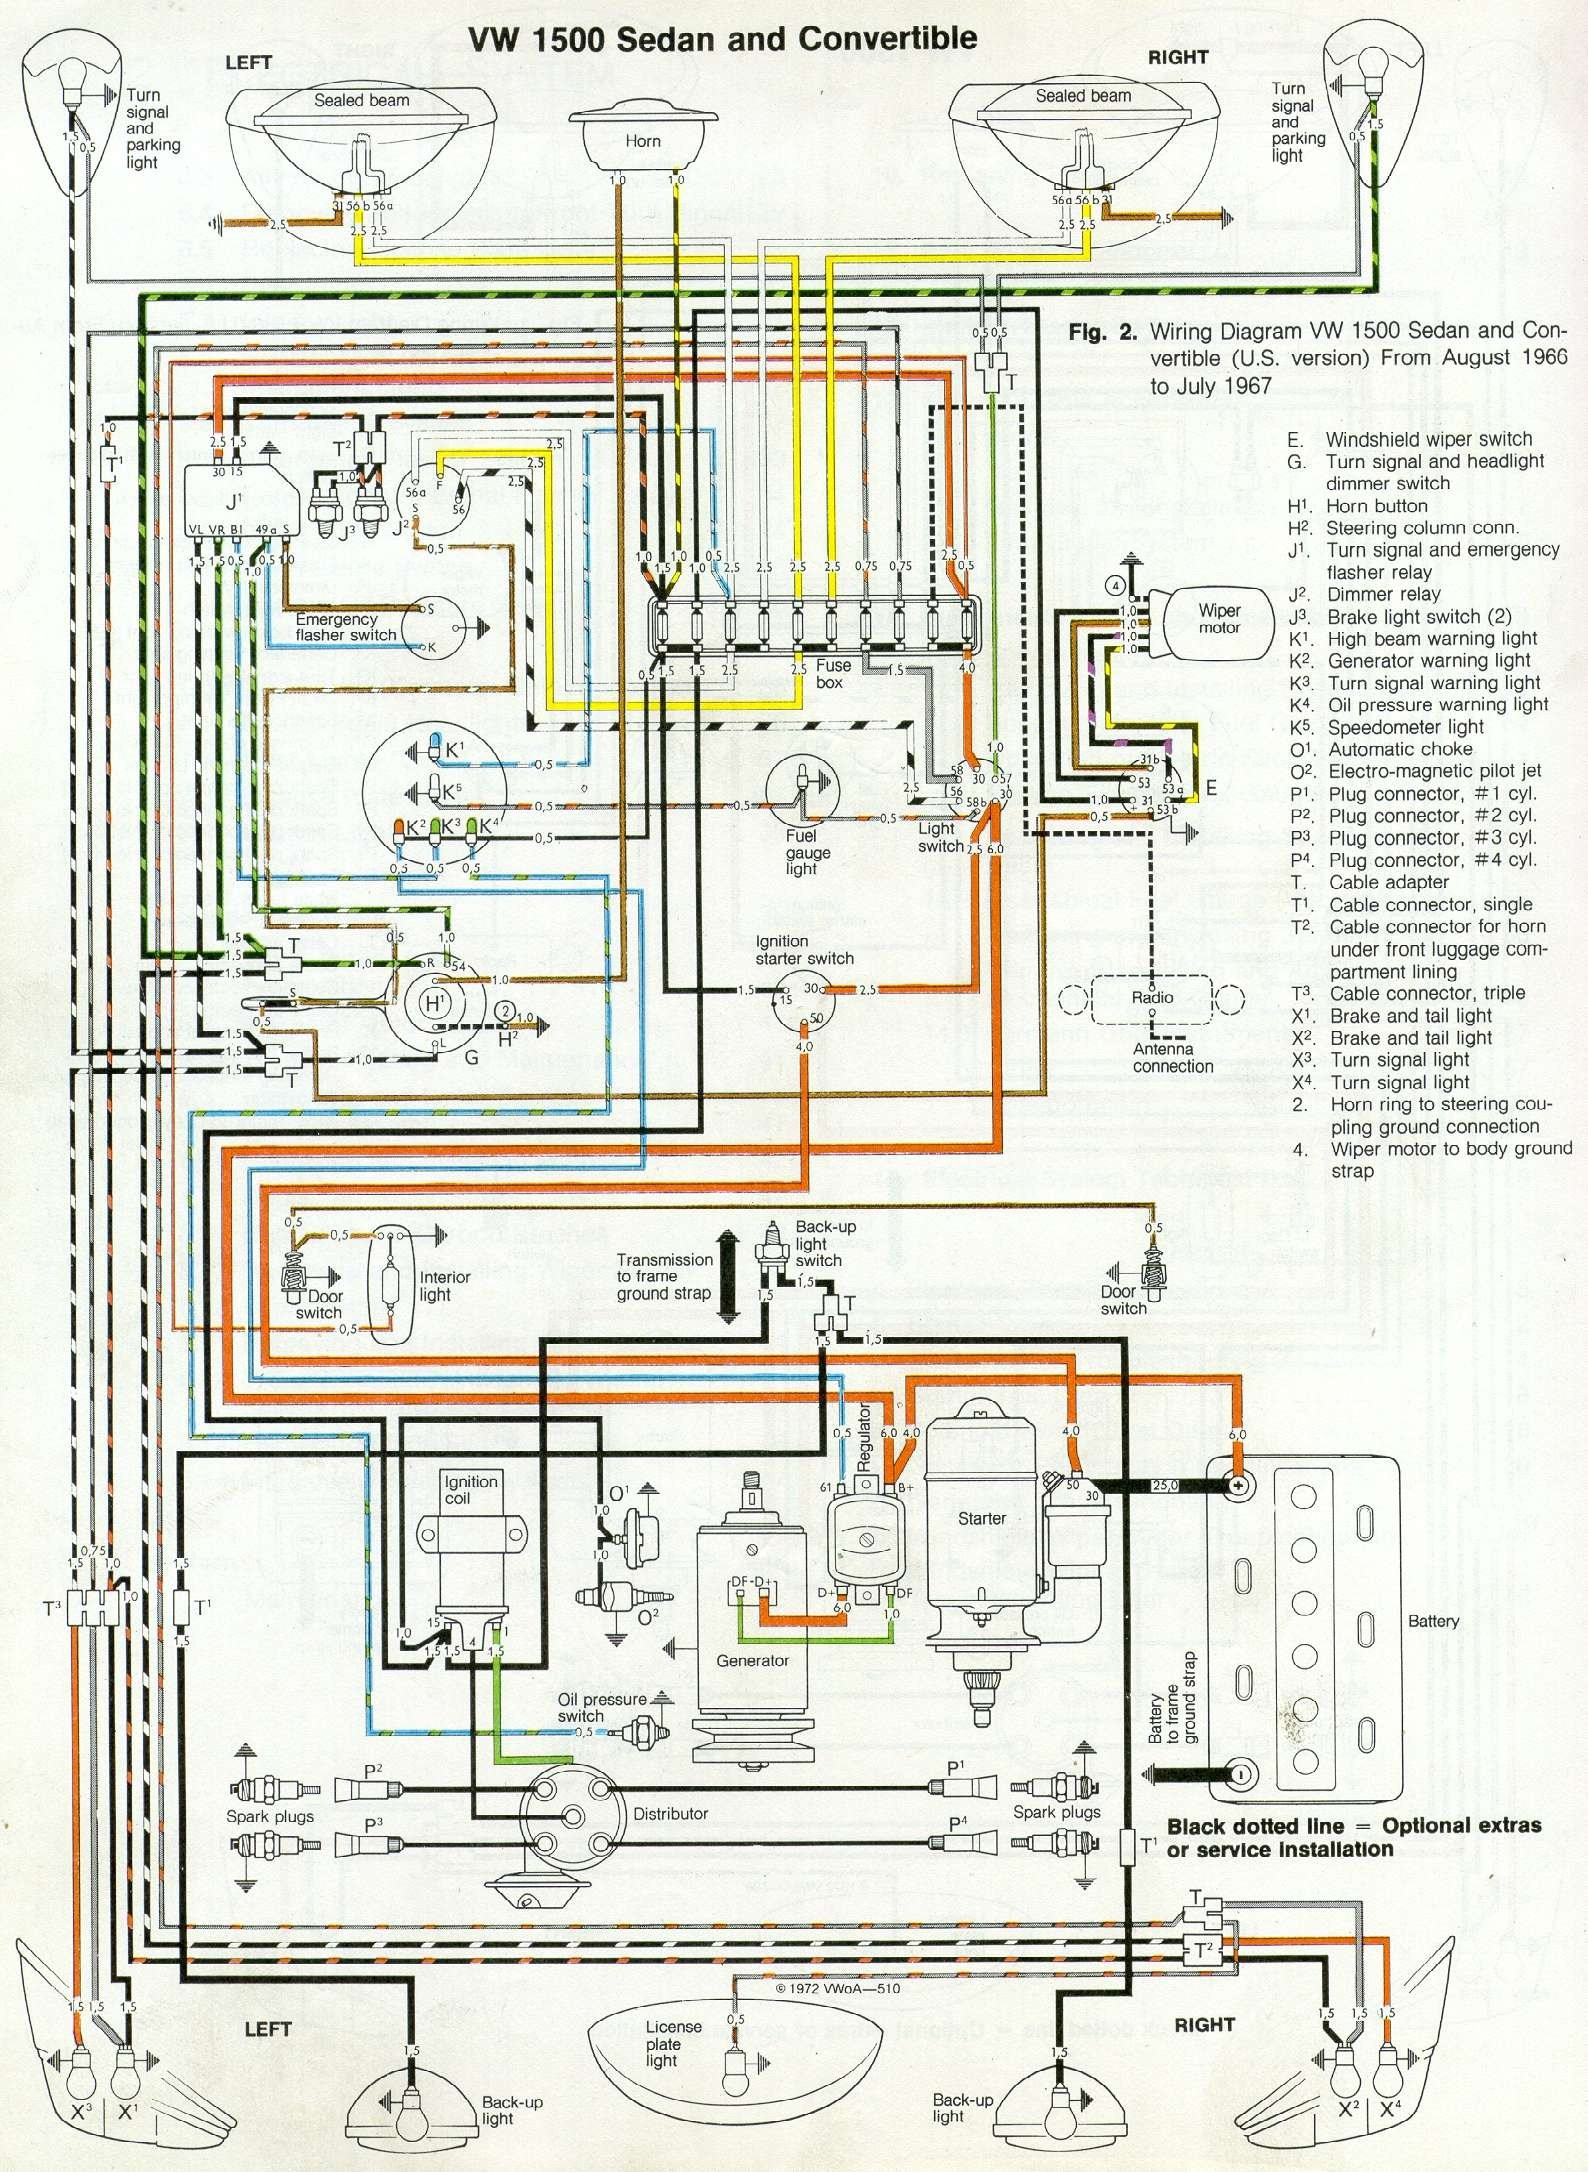 67 vw wiring harness wiring schematics diagram rh mychampagnedaze com 1971 VW Beetle Wiring Diagram 1965 VW Wiring Diagram